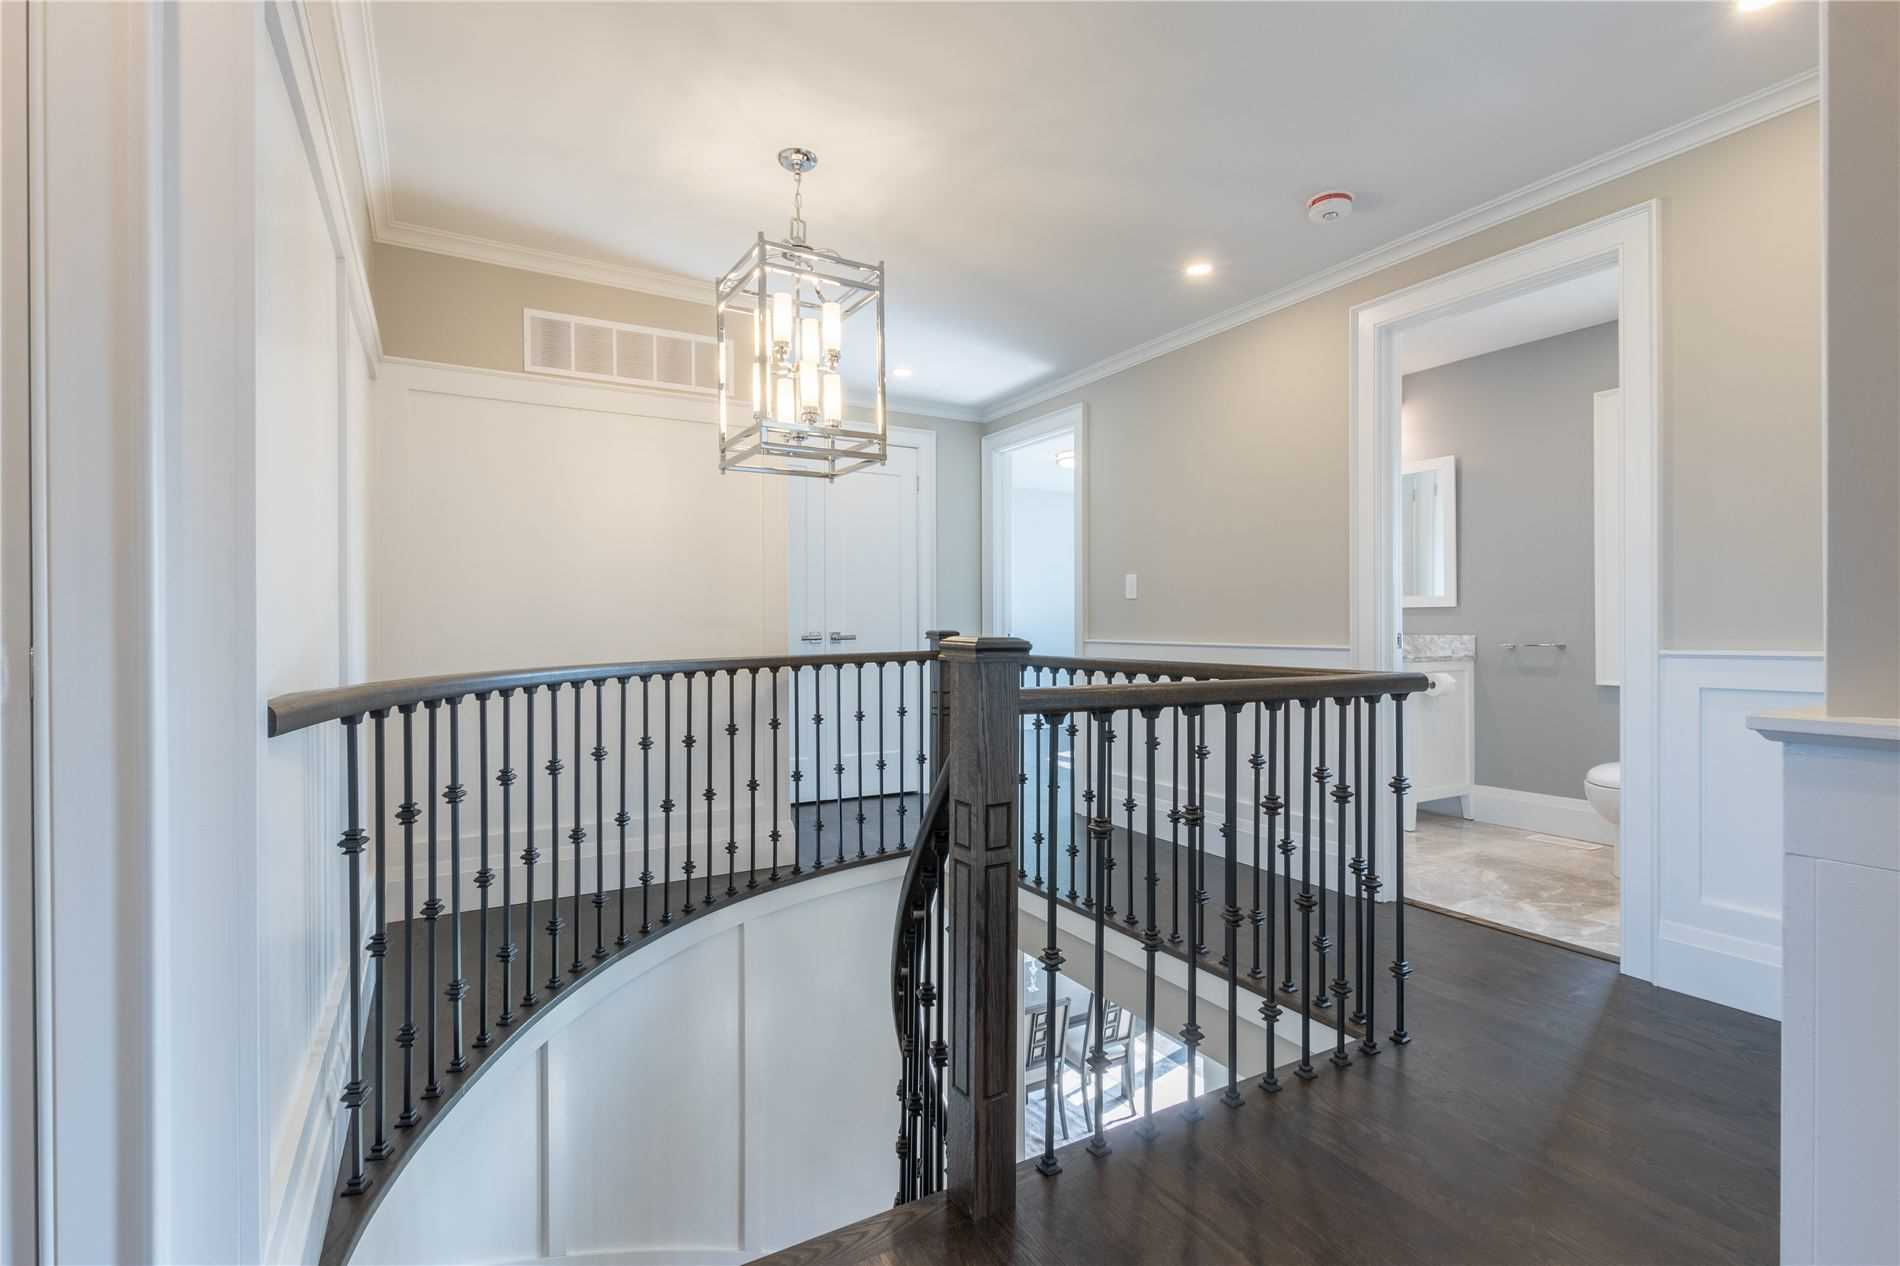 517 Aintree Dr, Whitchurch-Stouffville